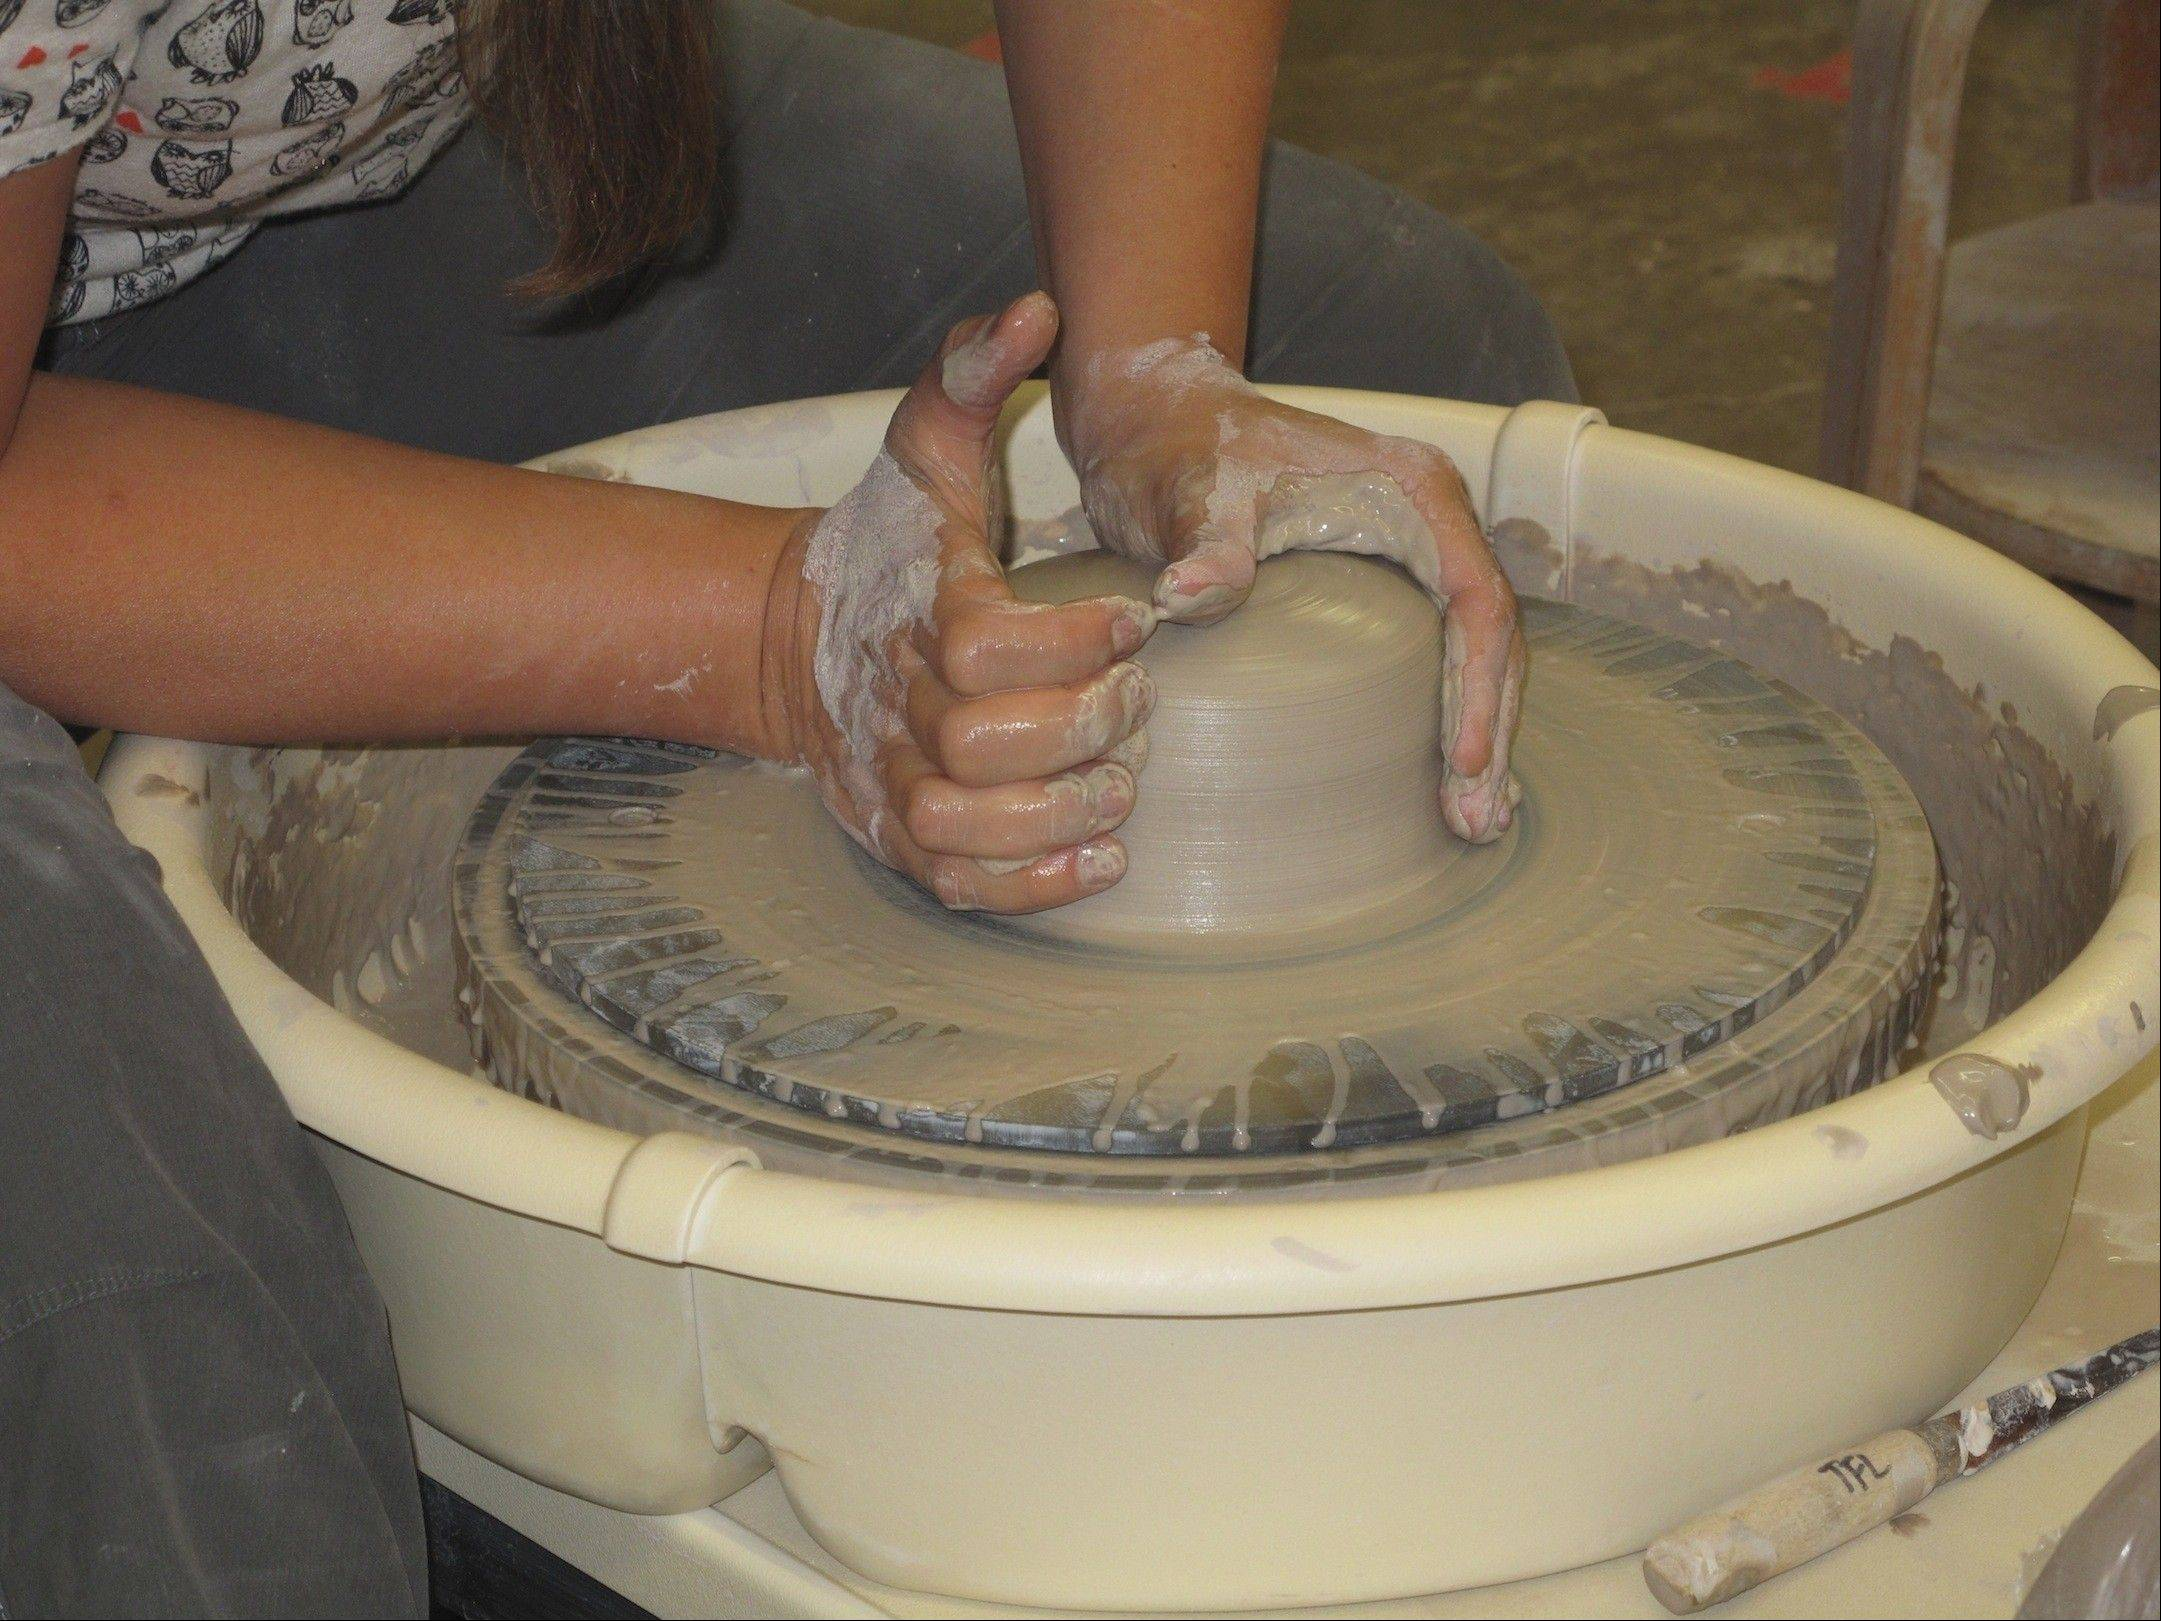 Artist Jodi Younglove teaches beginners through advanced ceramics classes, and she is available for private instruction at Fine Line, as well as in her home studio in Wheaton.